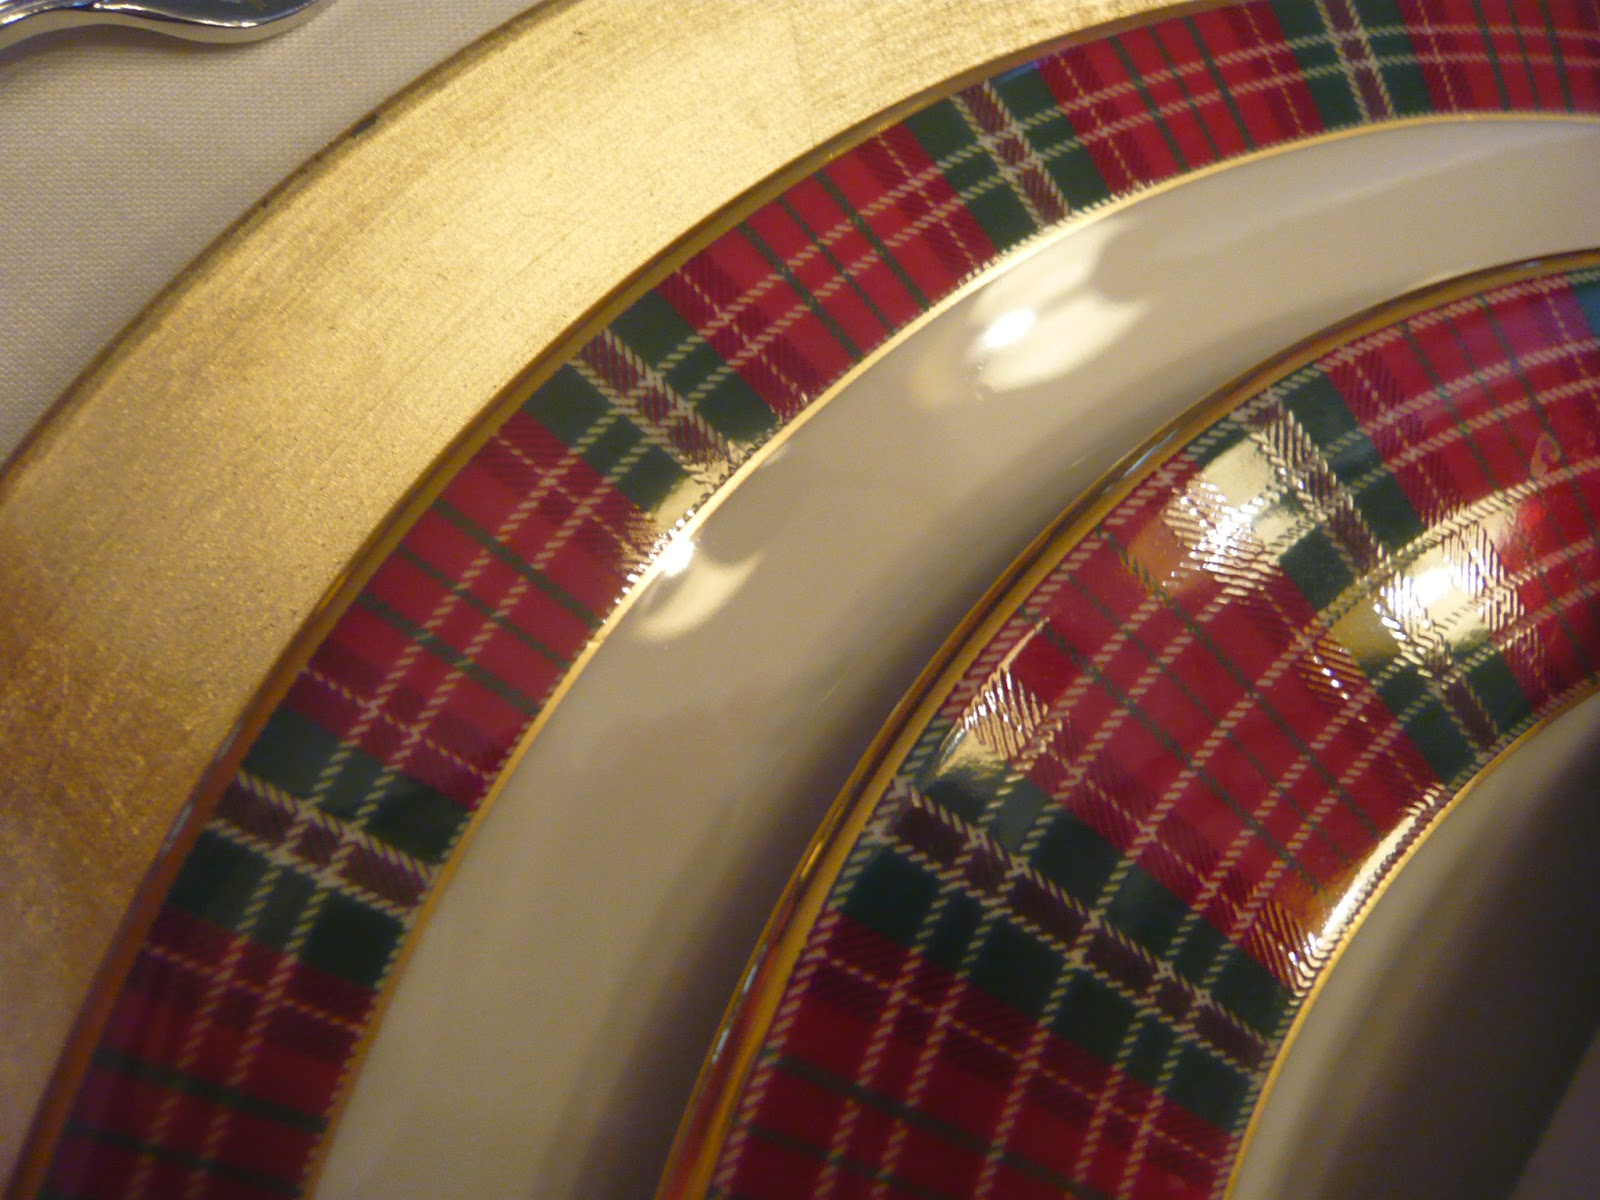 Dreams and epiphanies december 2014 i got to use my new christmas dishes winter greetings plaid just released this year by lenox now thats a rim shot m4hsunfo